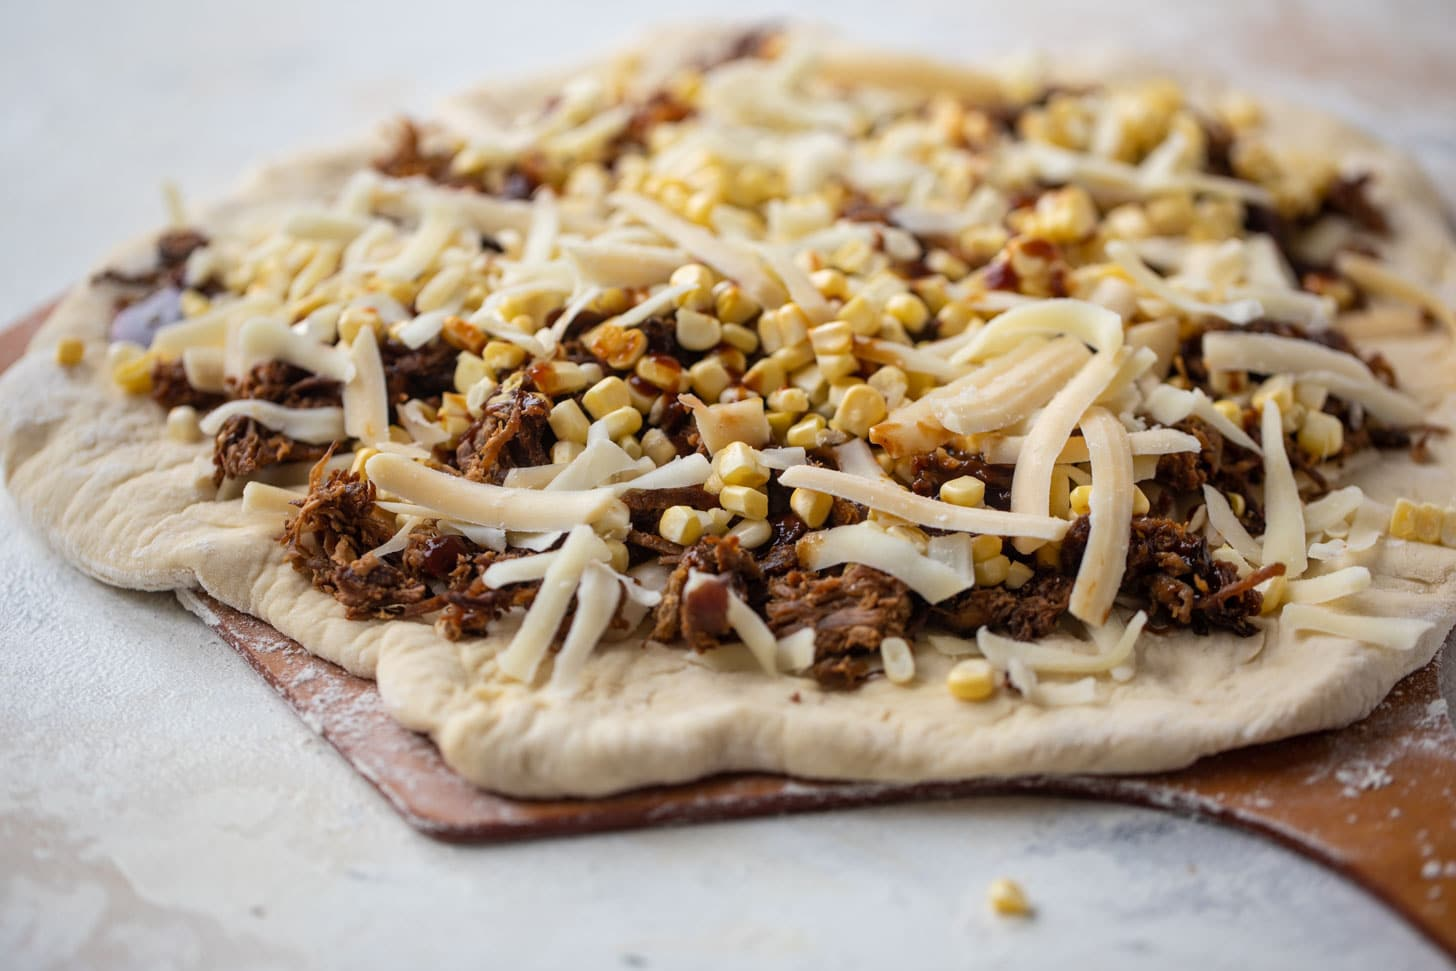 BBQ pulled pork & sweet corn pizza ready for the grill